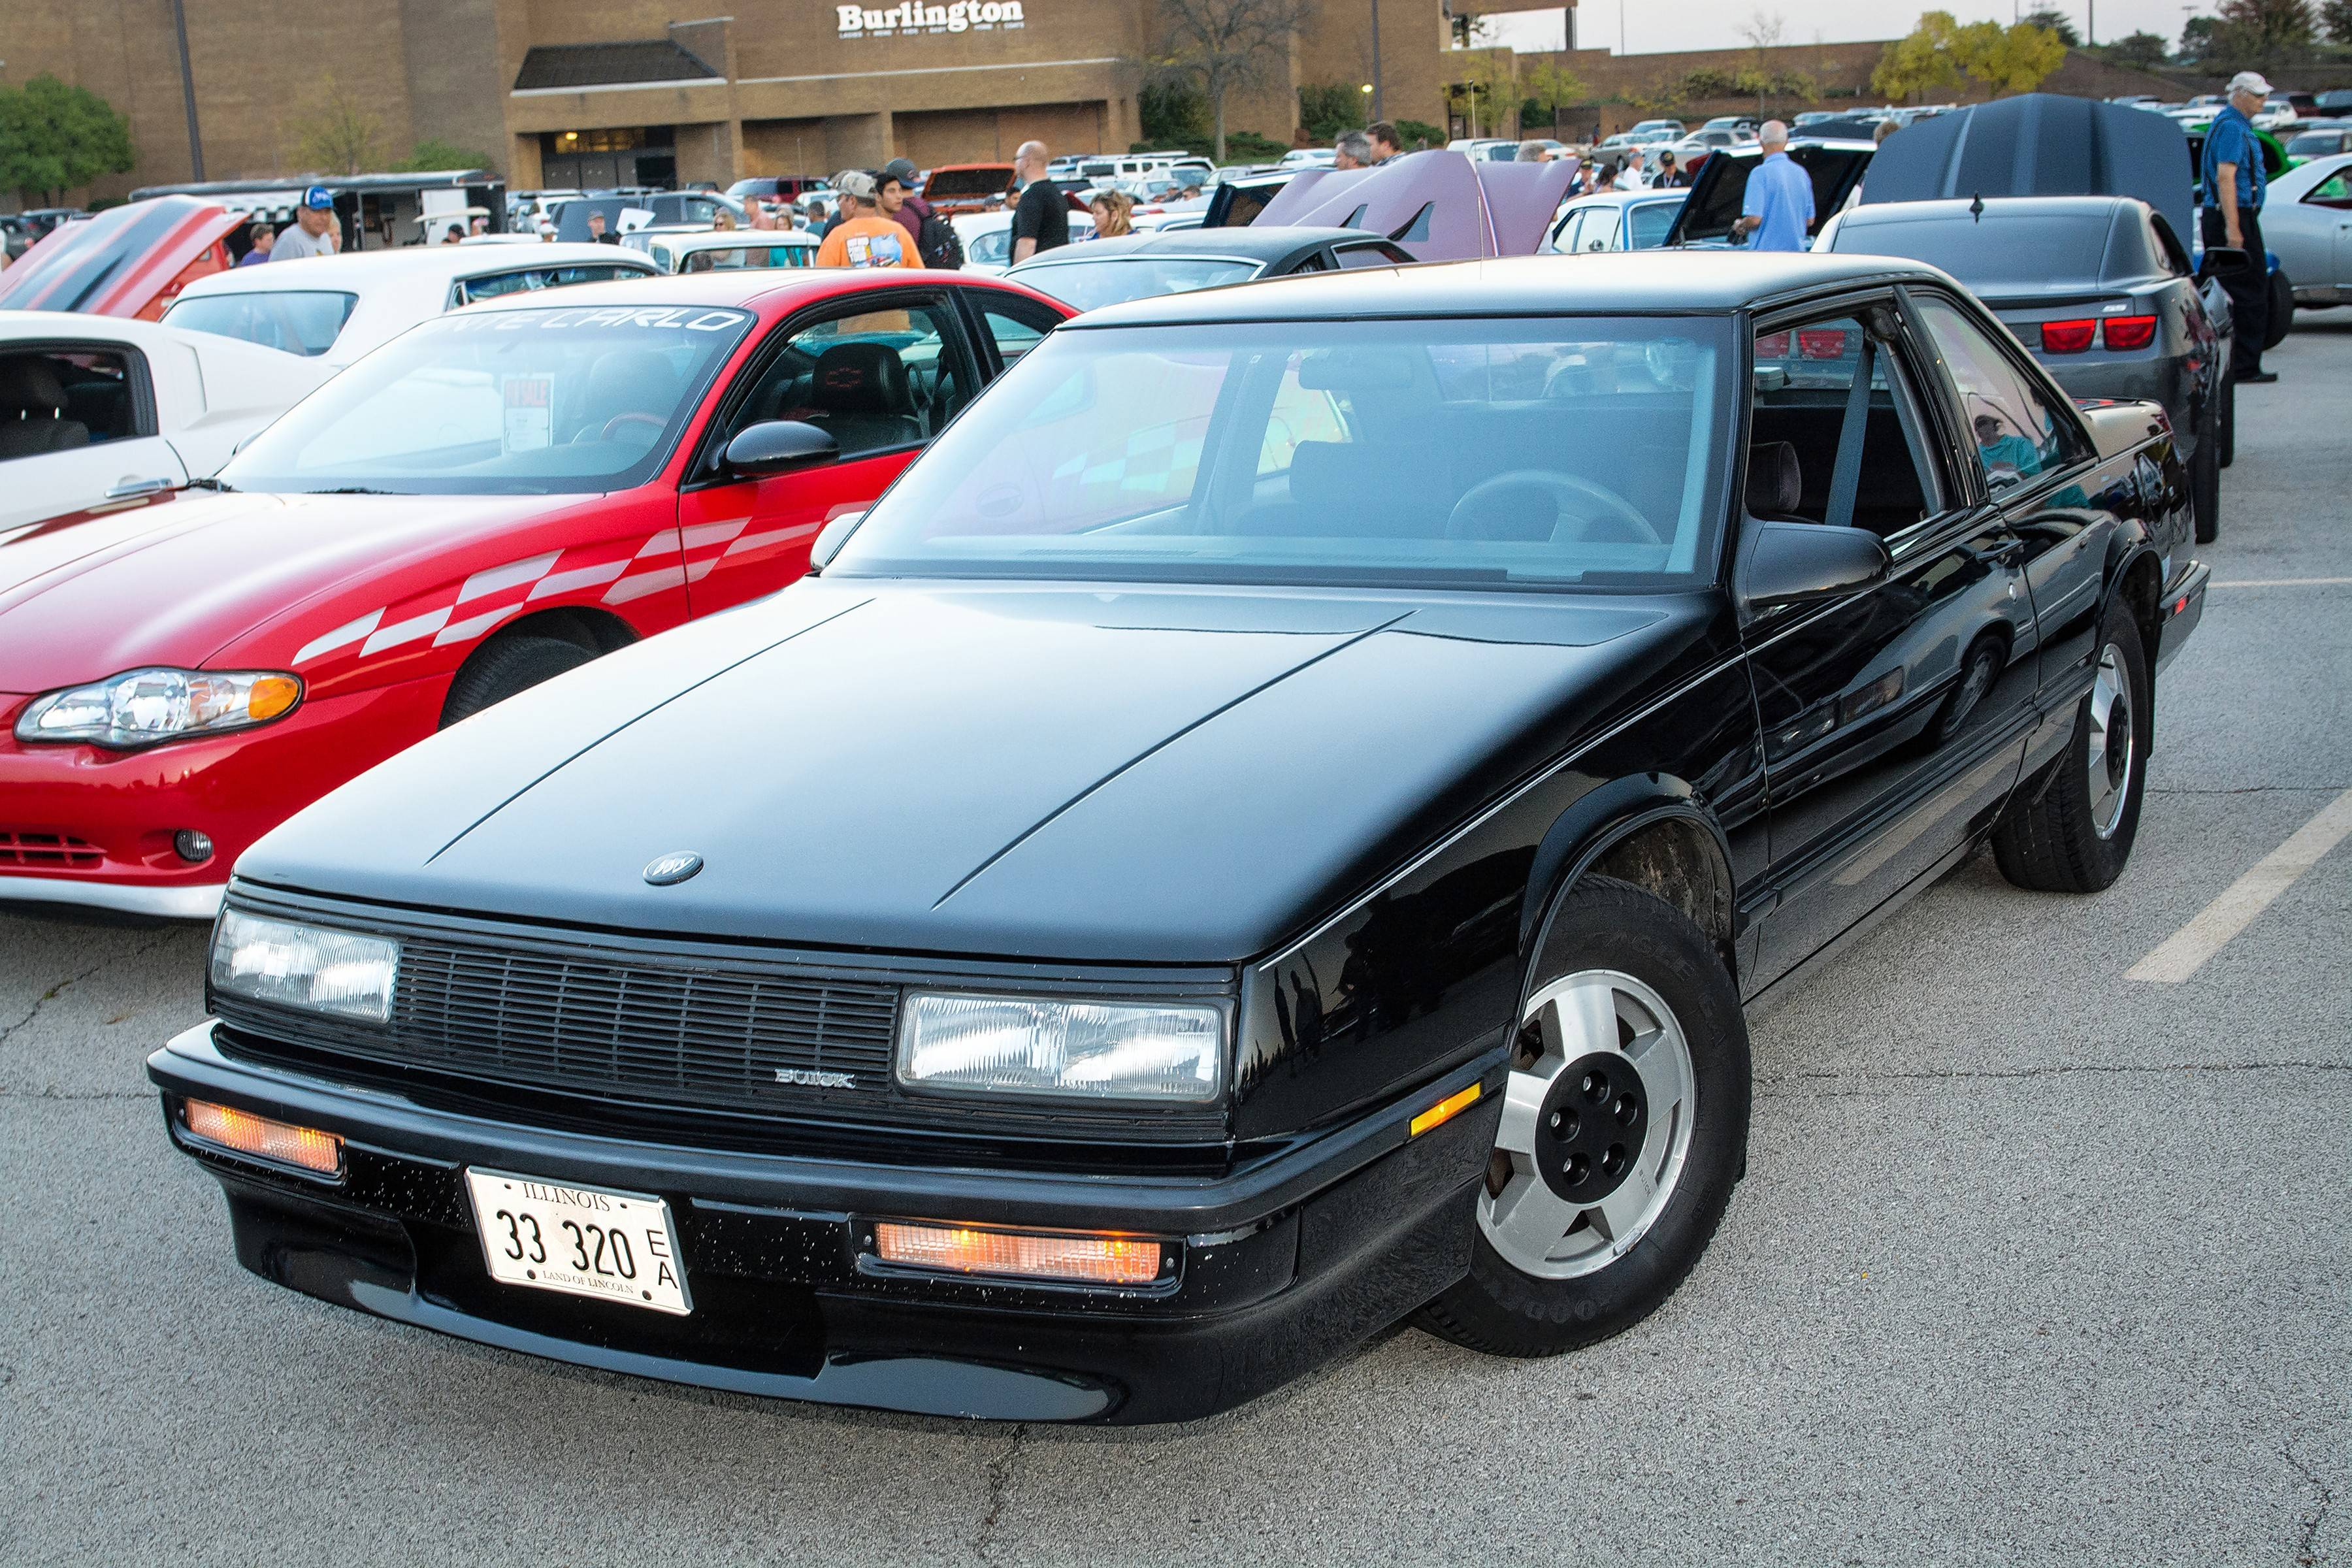 1989 Buick LeSabre T-Type